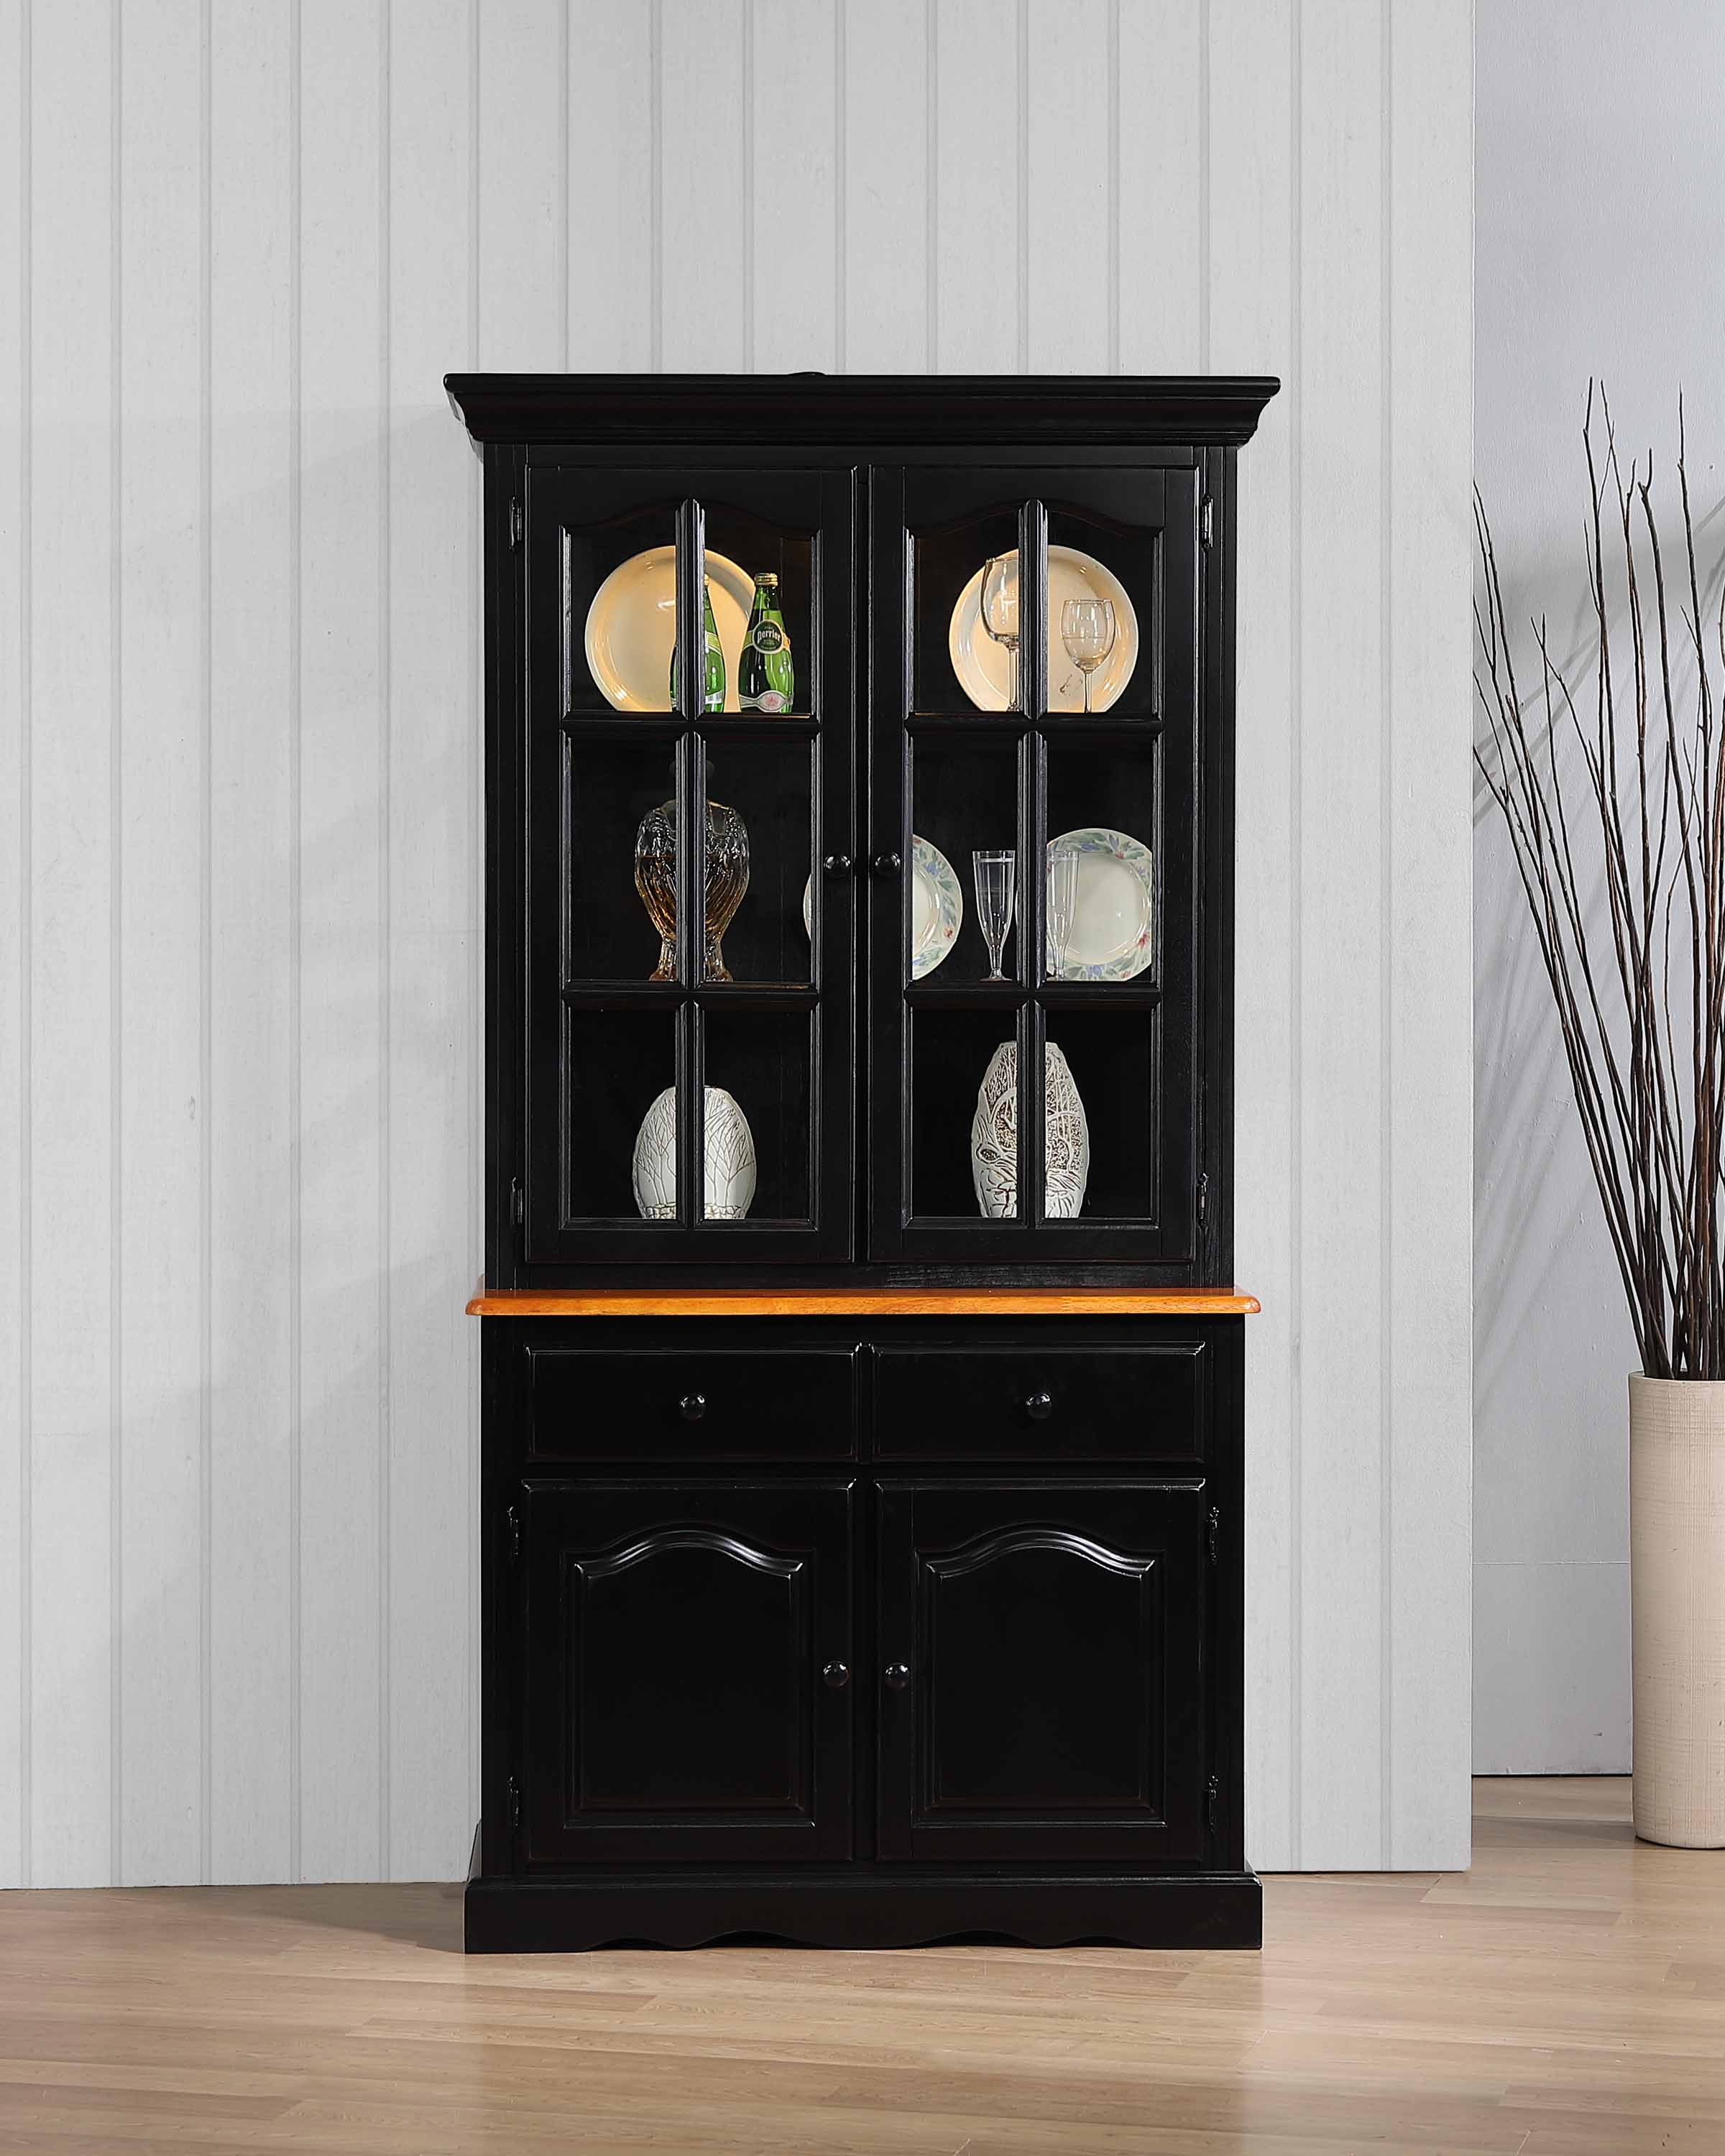 Dlu 19 Bh Bch | Keepsake Buffet And Lighted Hutch | Antique Inside Rustic Black 2 Drawer Buffets (Photo 25 of 30)